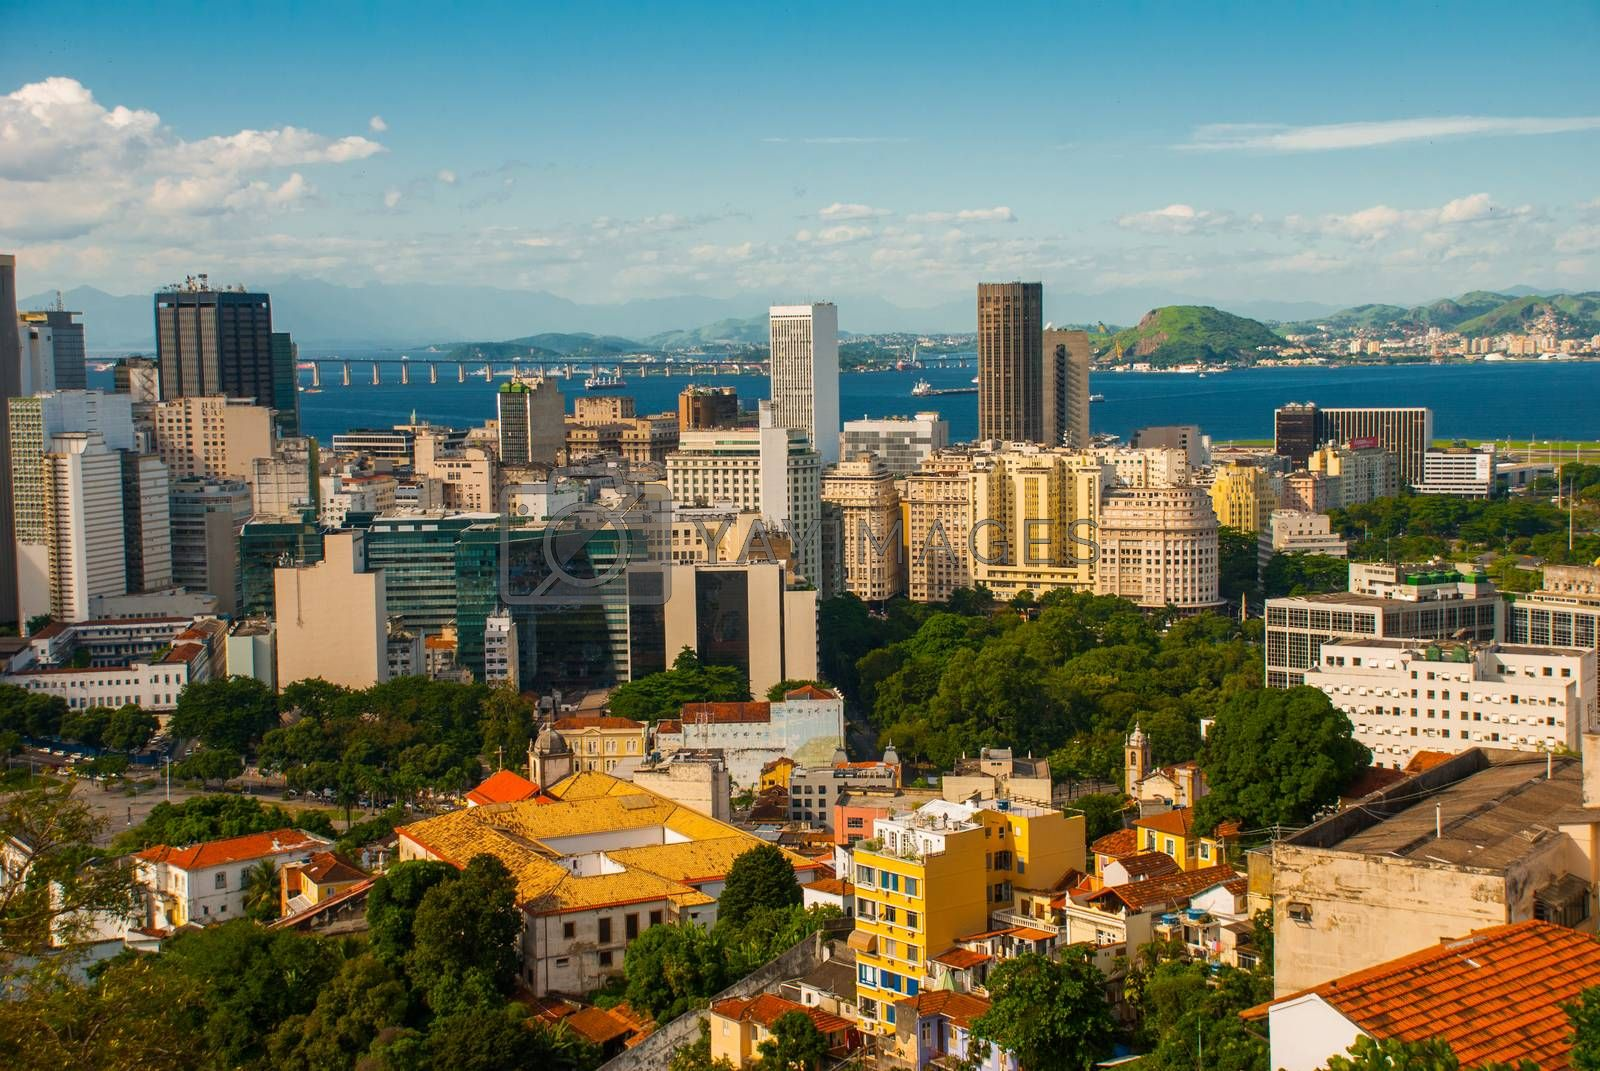 Rio de Janeiro, Brazil. Beautiful view of skyscrapers and houses from above. America